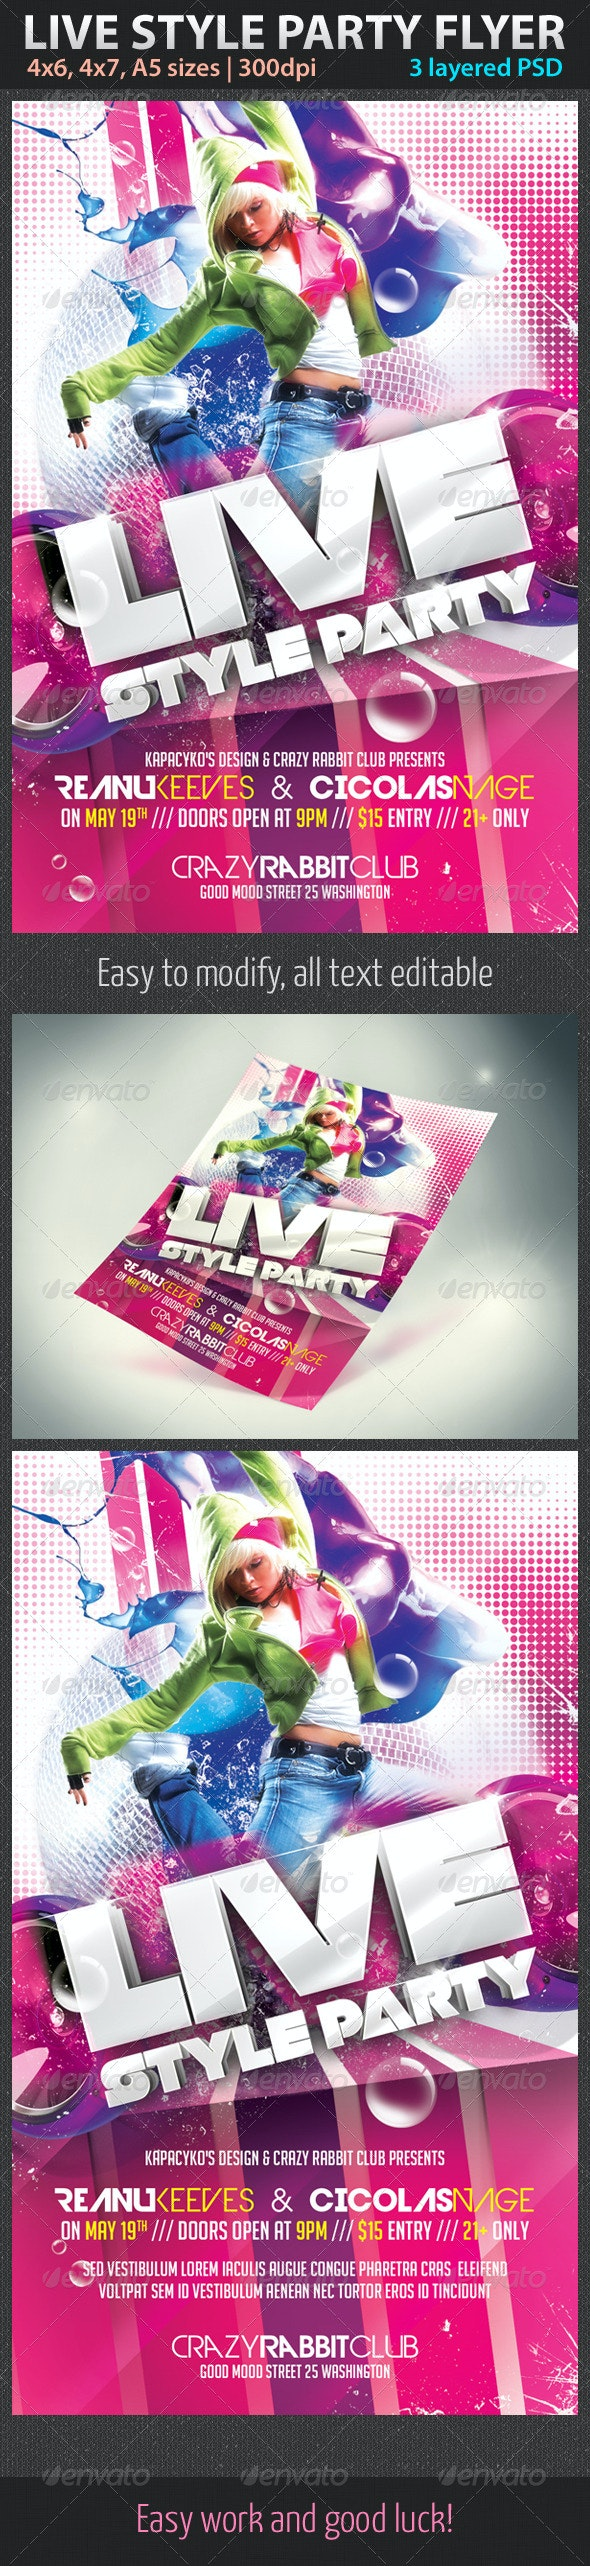 Live Style Party Flyer - Clubs & Parties Events